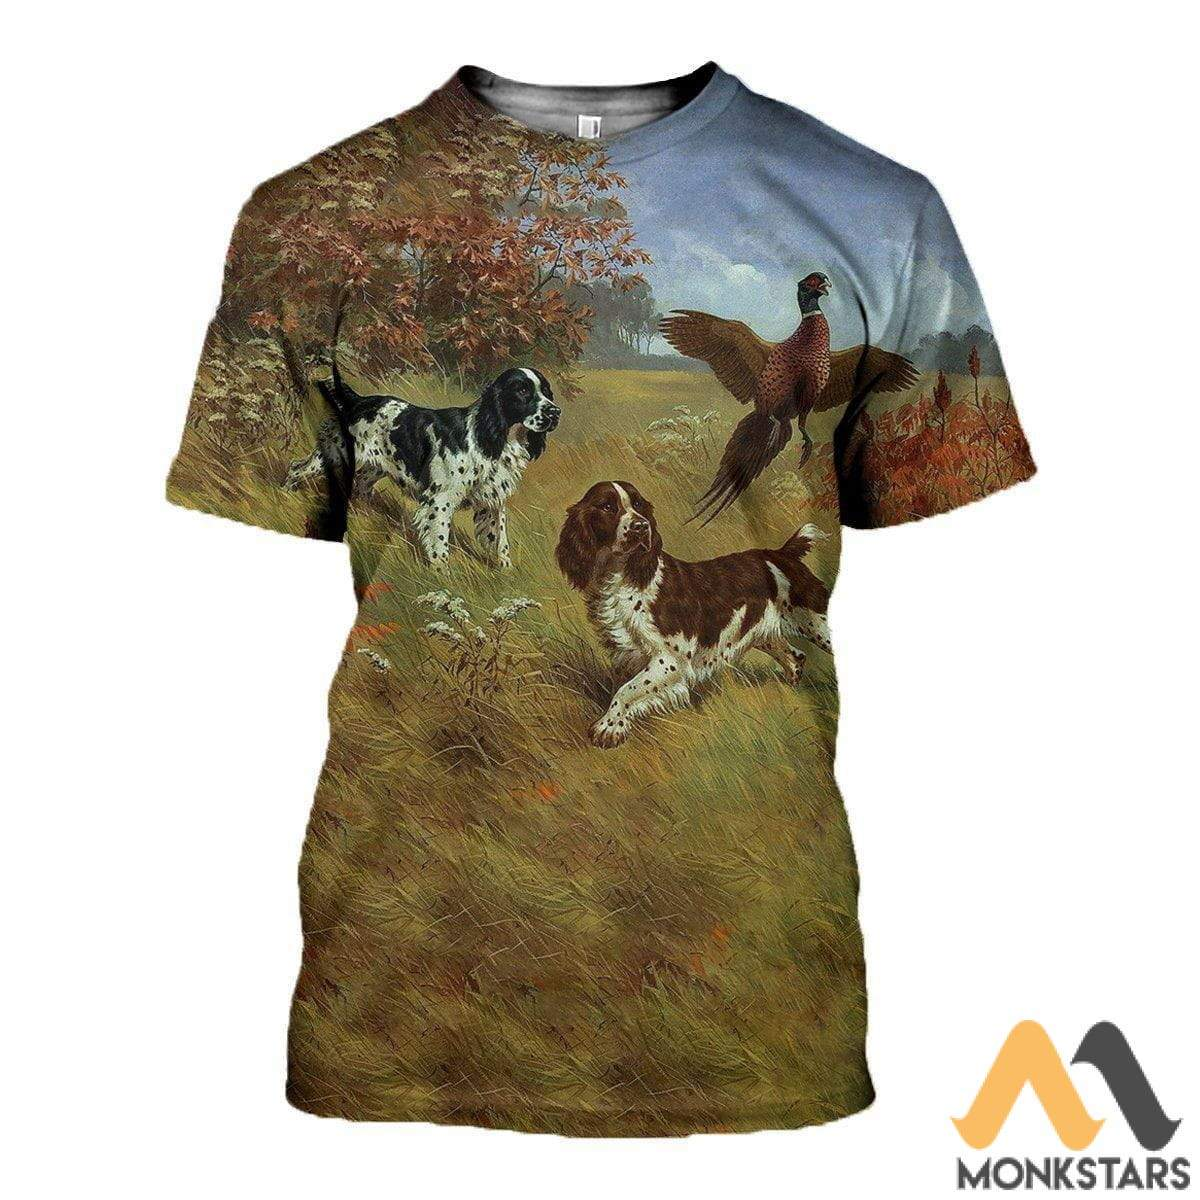 3D All Over Printed English Springer Spaniels Shirts And Shorts T-Shirt / S Clothes